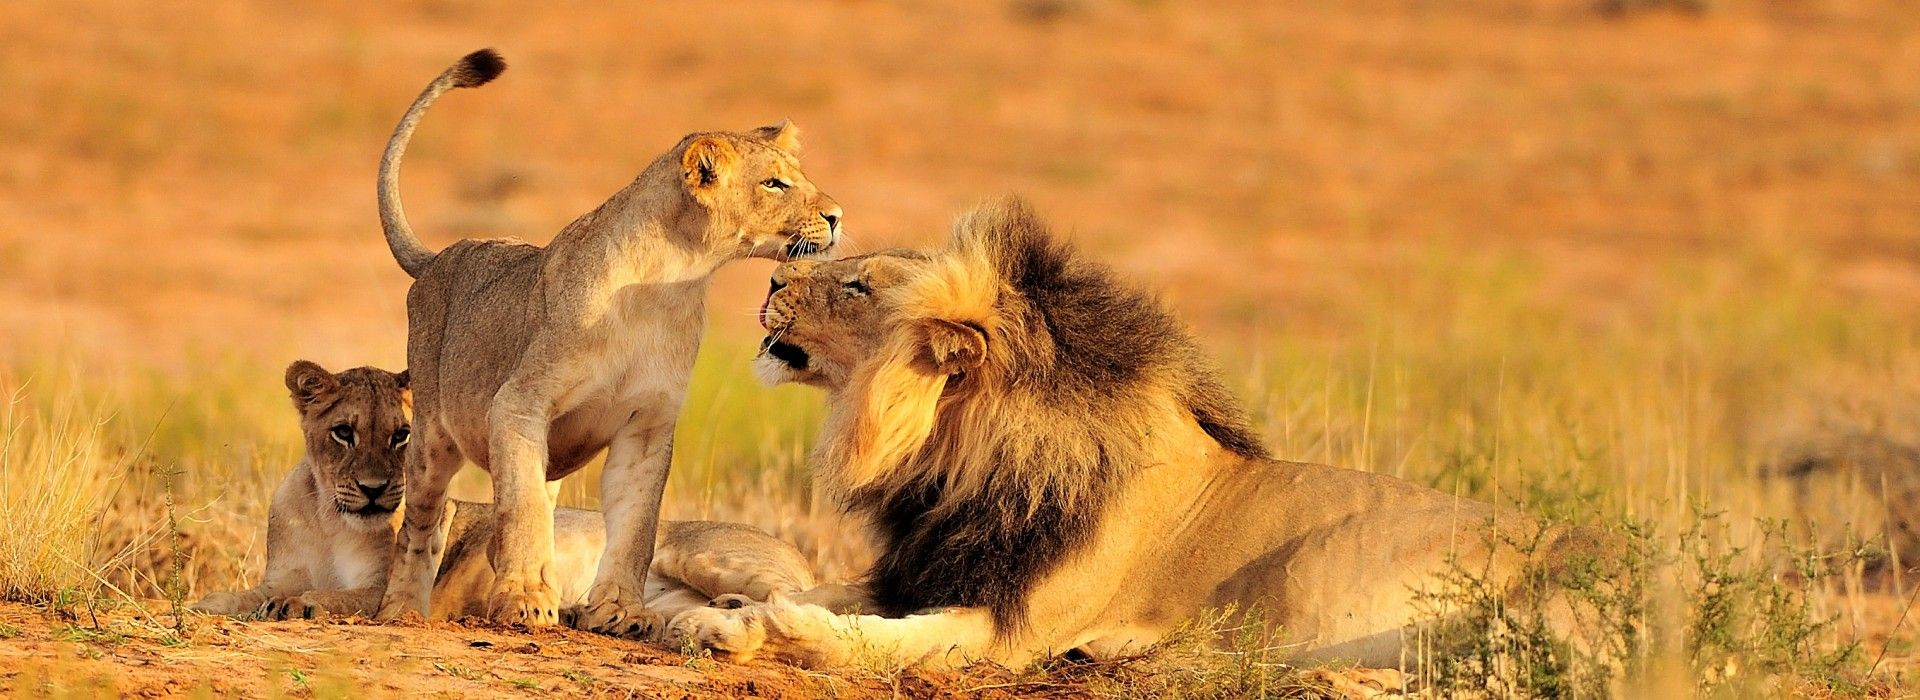 South Africa Tours and Trips to South Africa